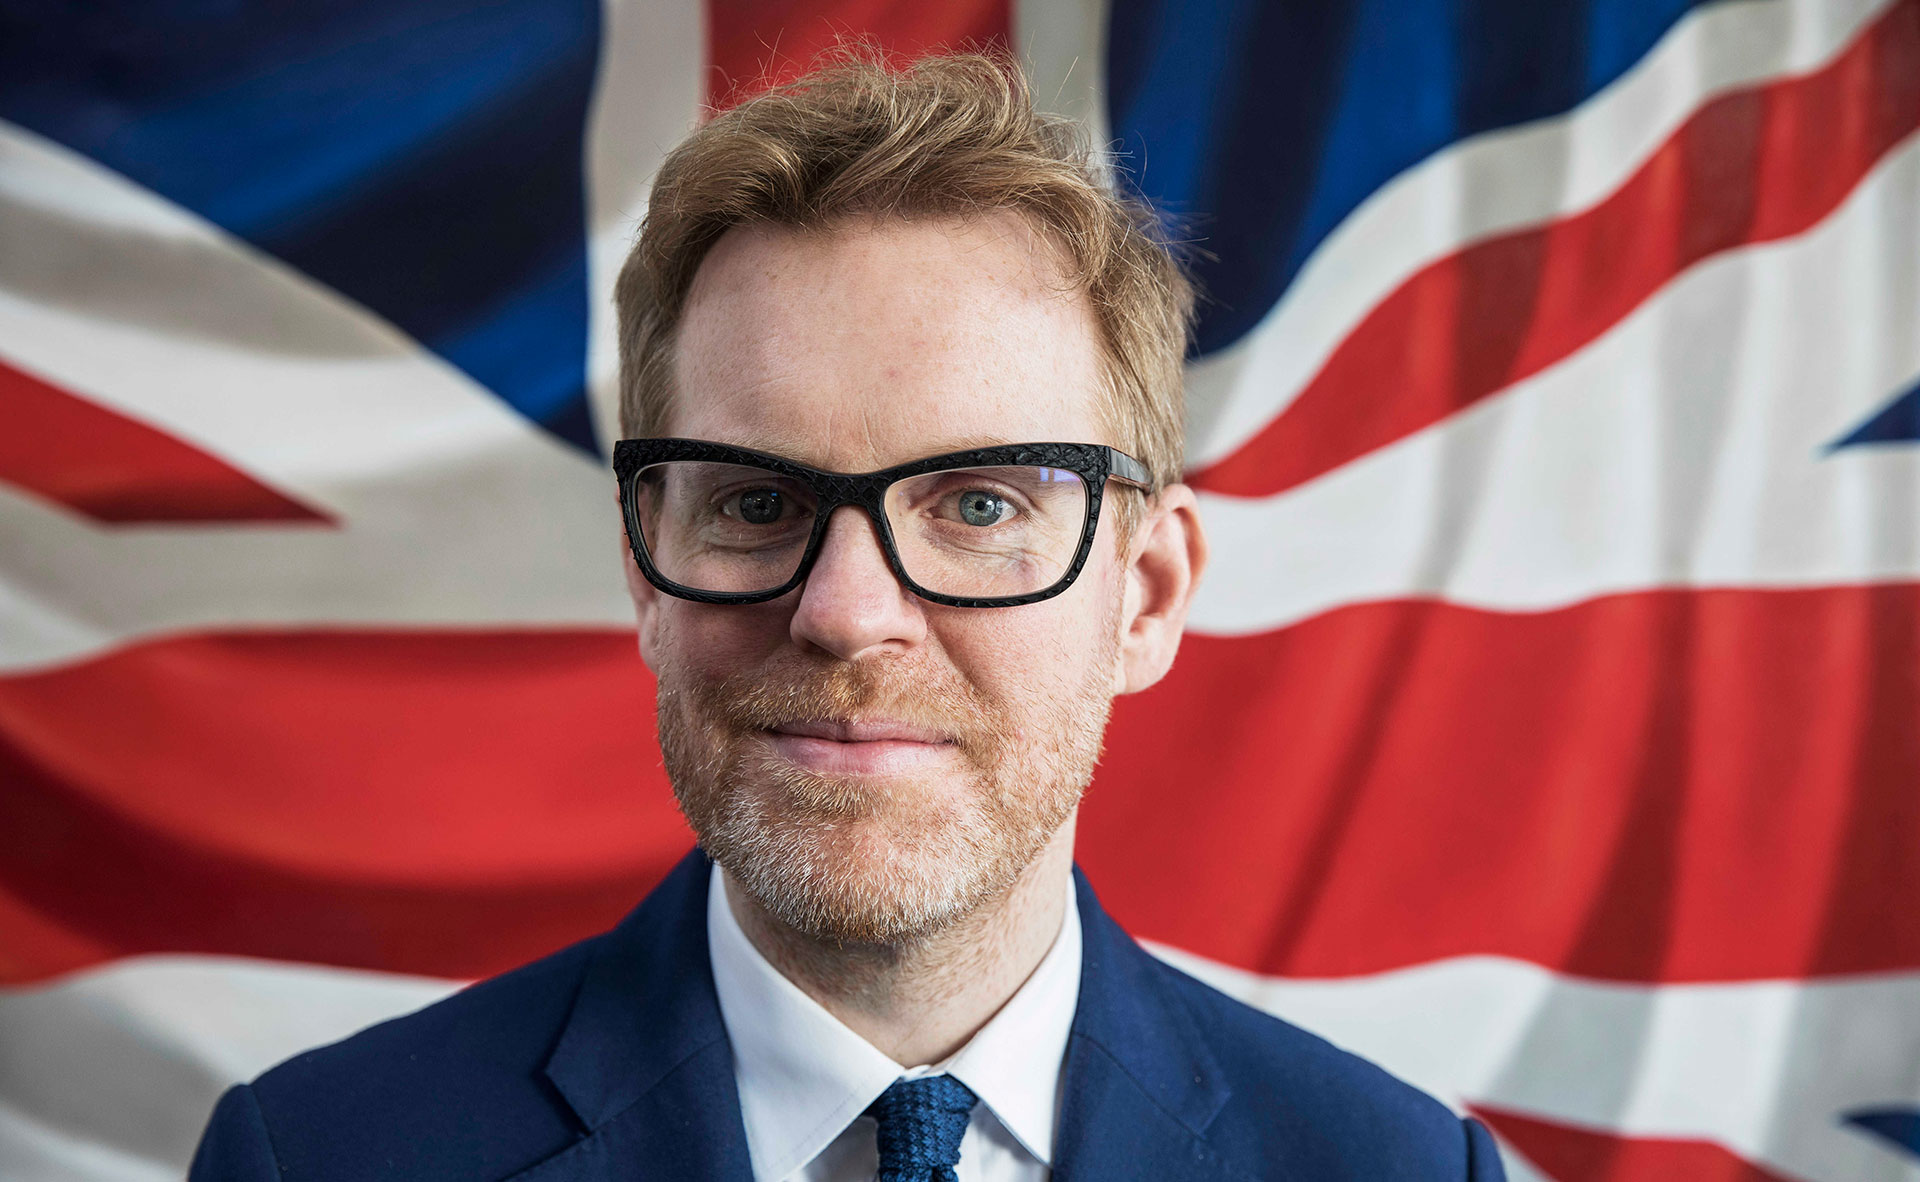 British eyewear designer Tom Davies in front of the Union Jack